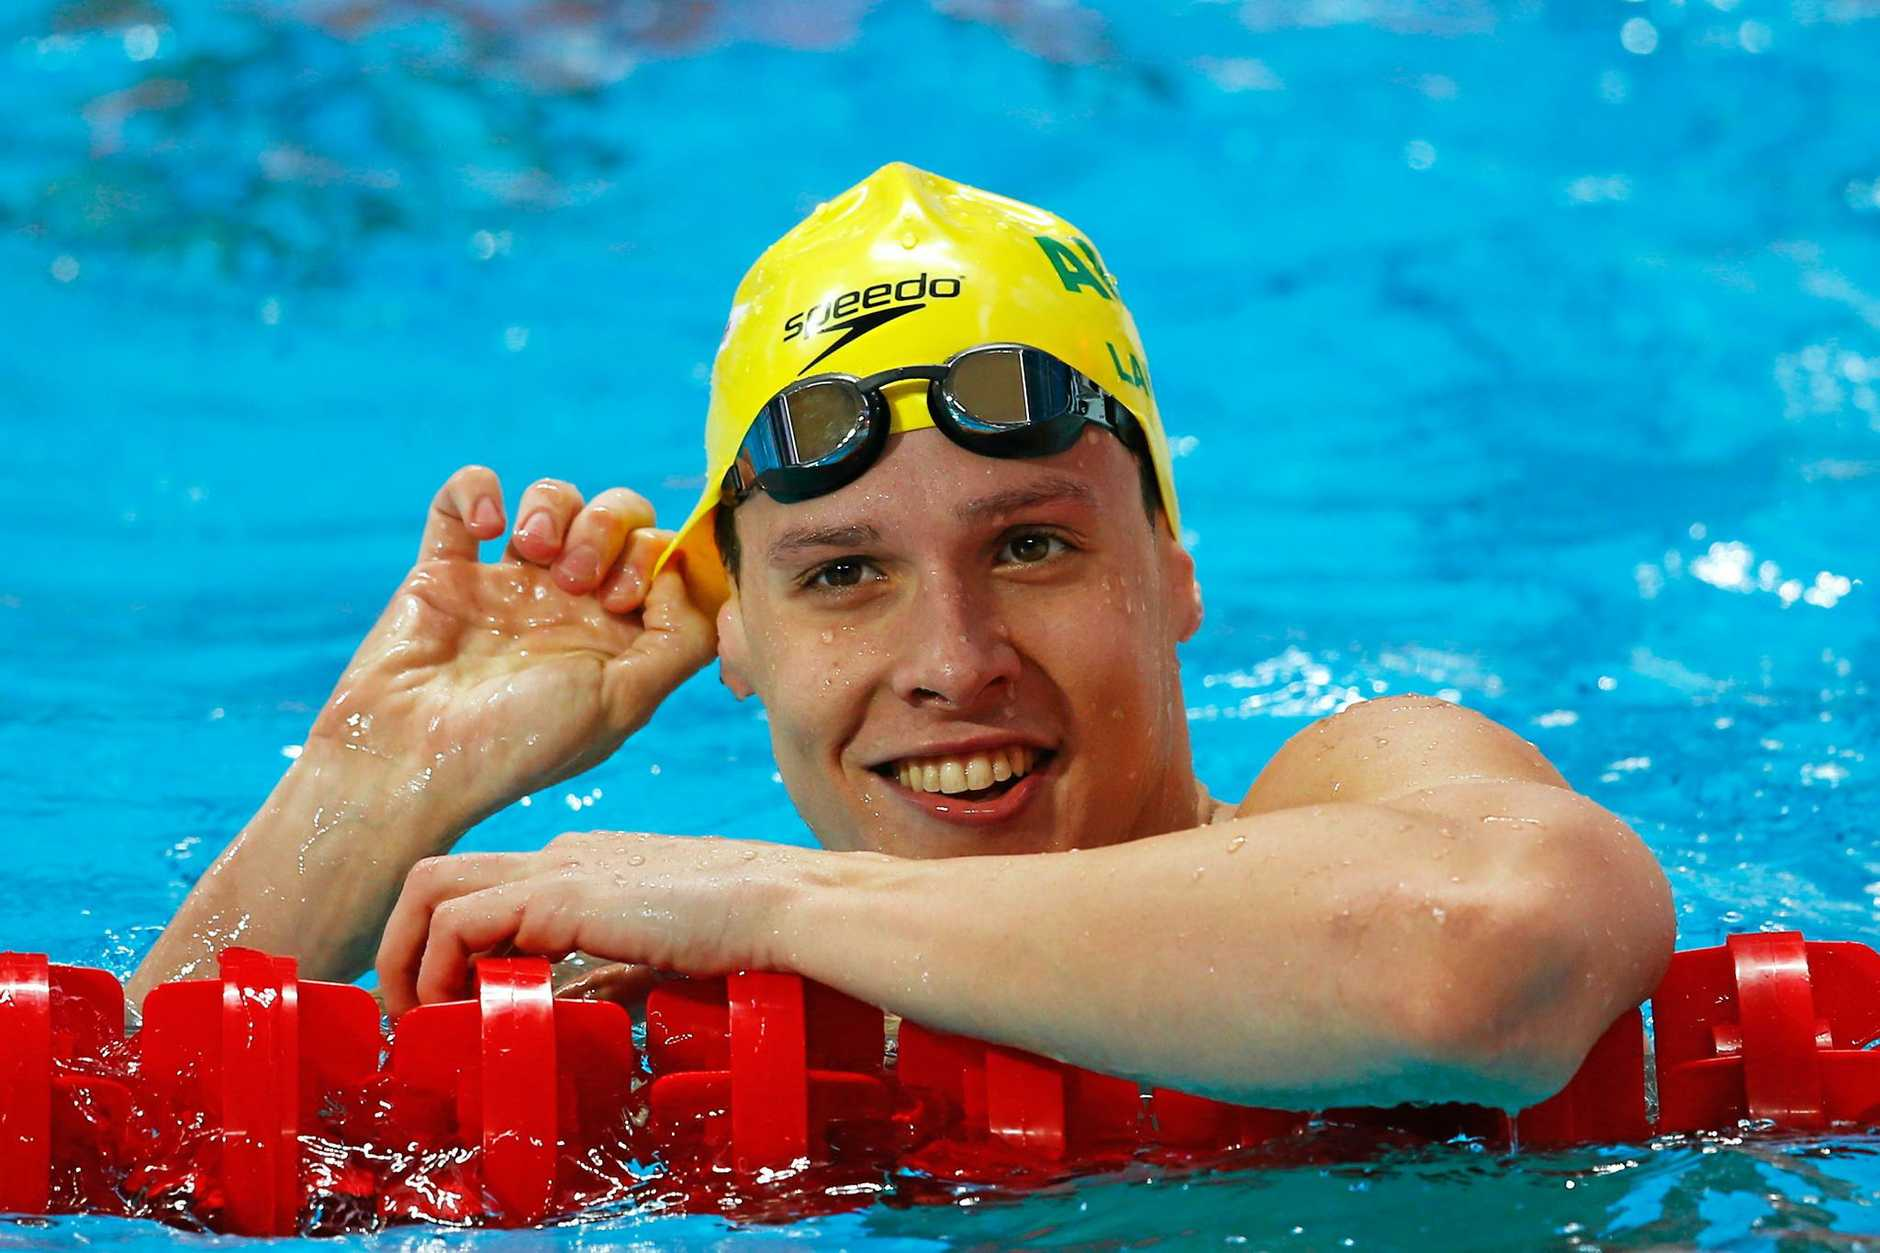 OLYMPIC HOPE: Mitch Larkin of Australia smiles after his men's 50m backstroke heat at last year's world championships in Kazan.